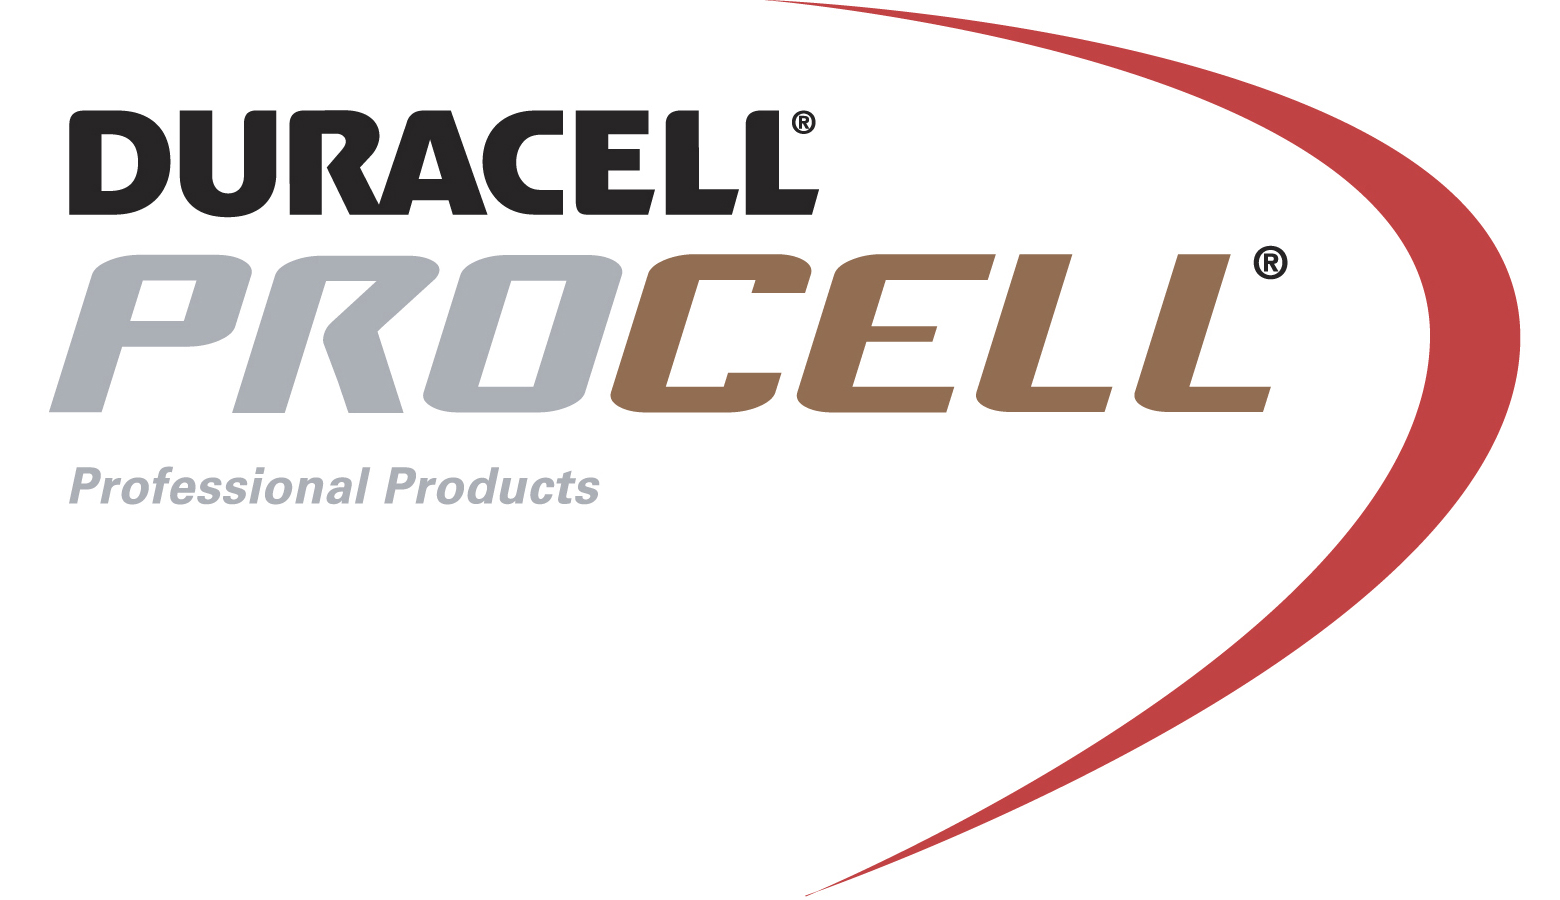 Website-PROCELL